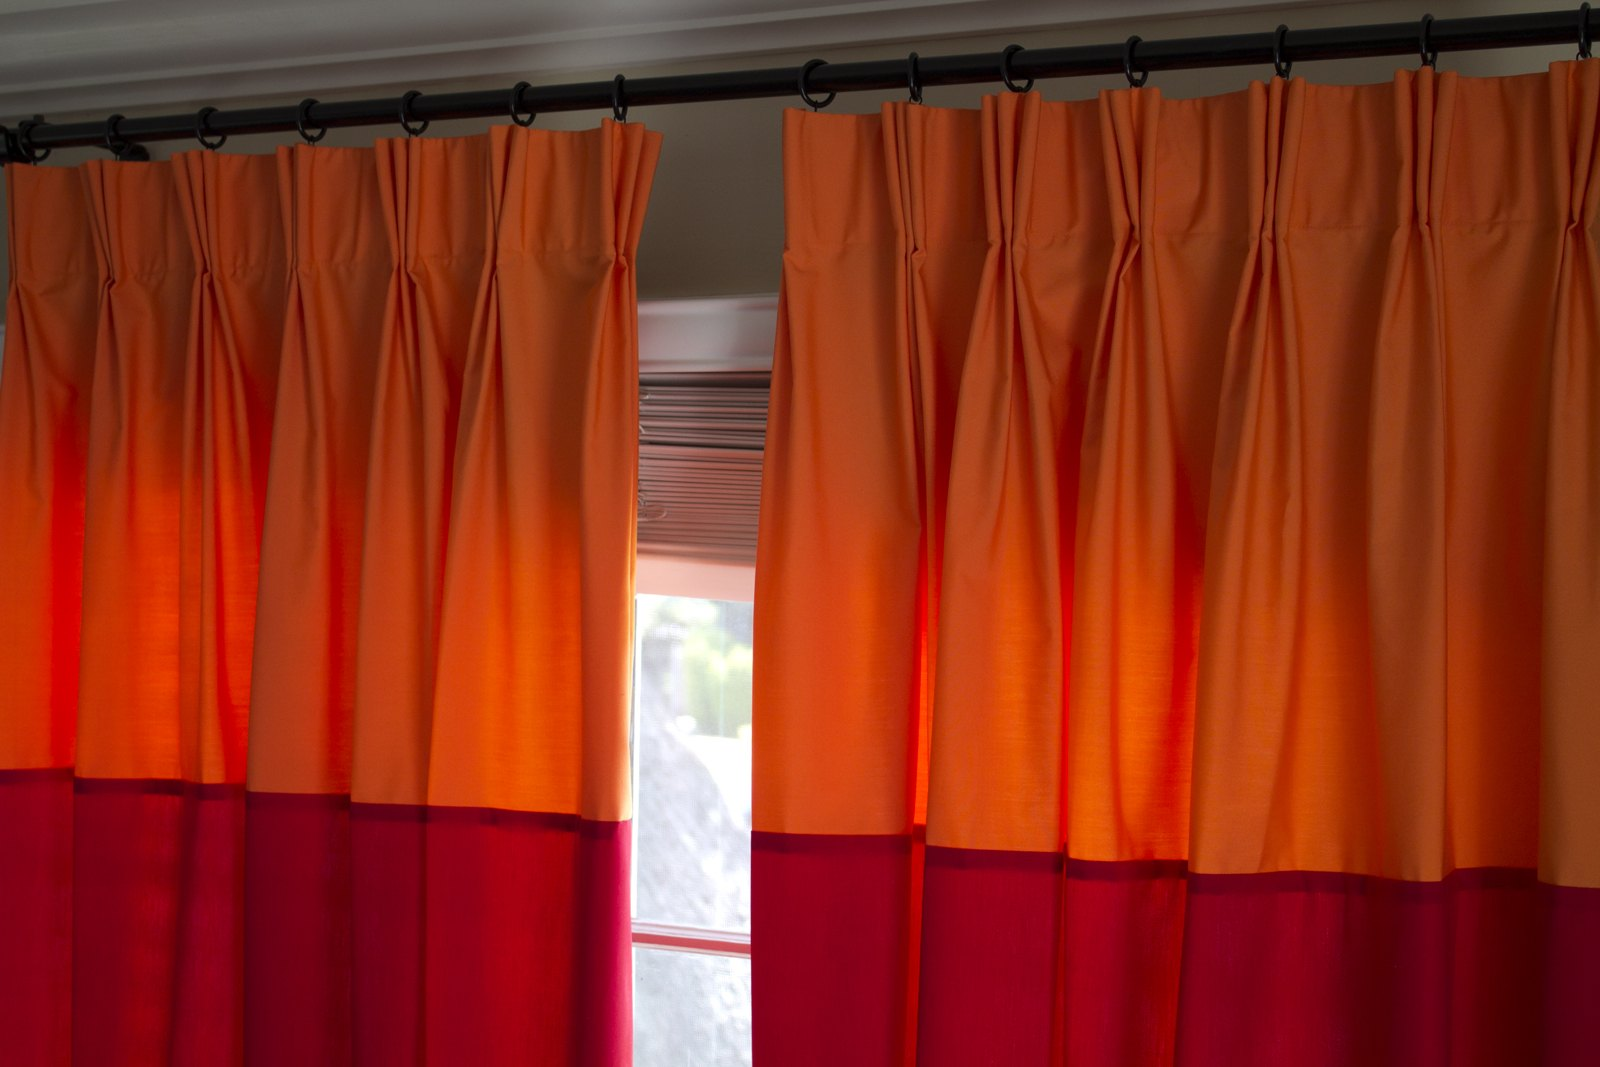 How To Make Pinch Pleat Drapes With Pleat Tape Ehow